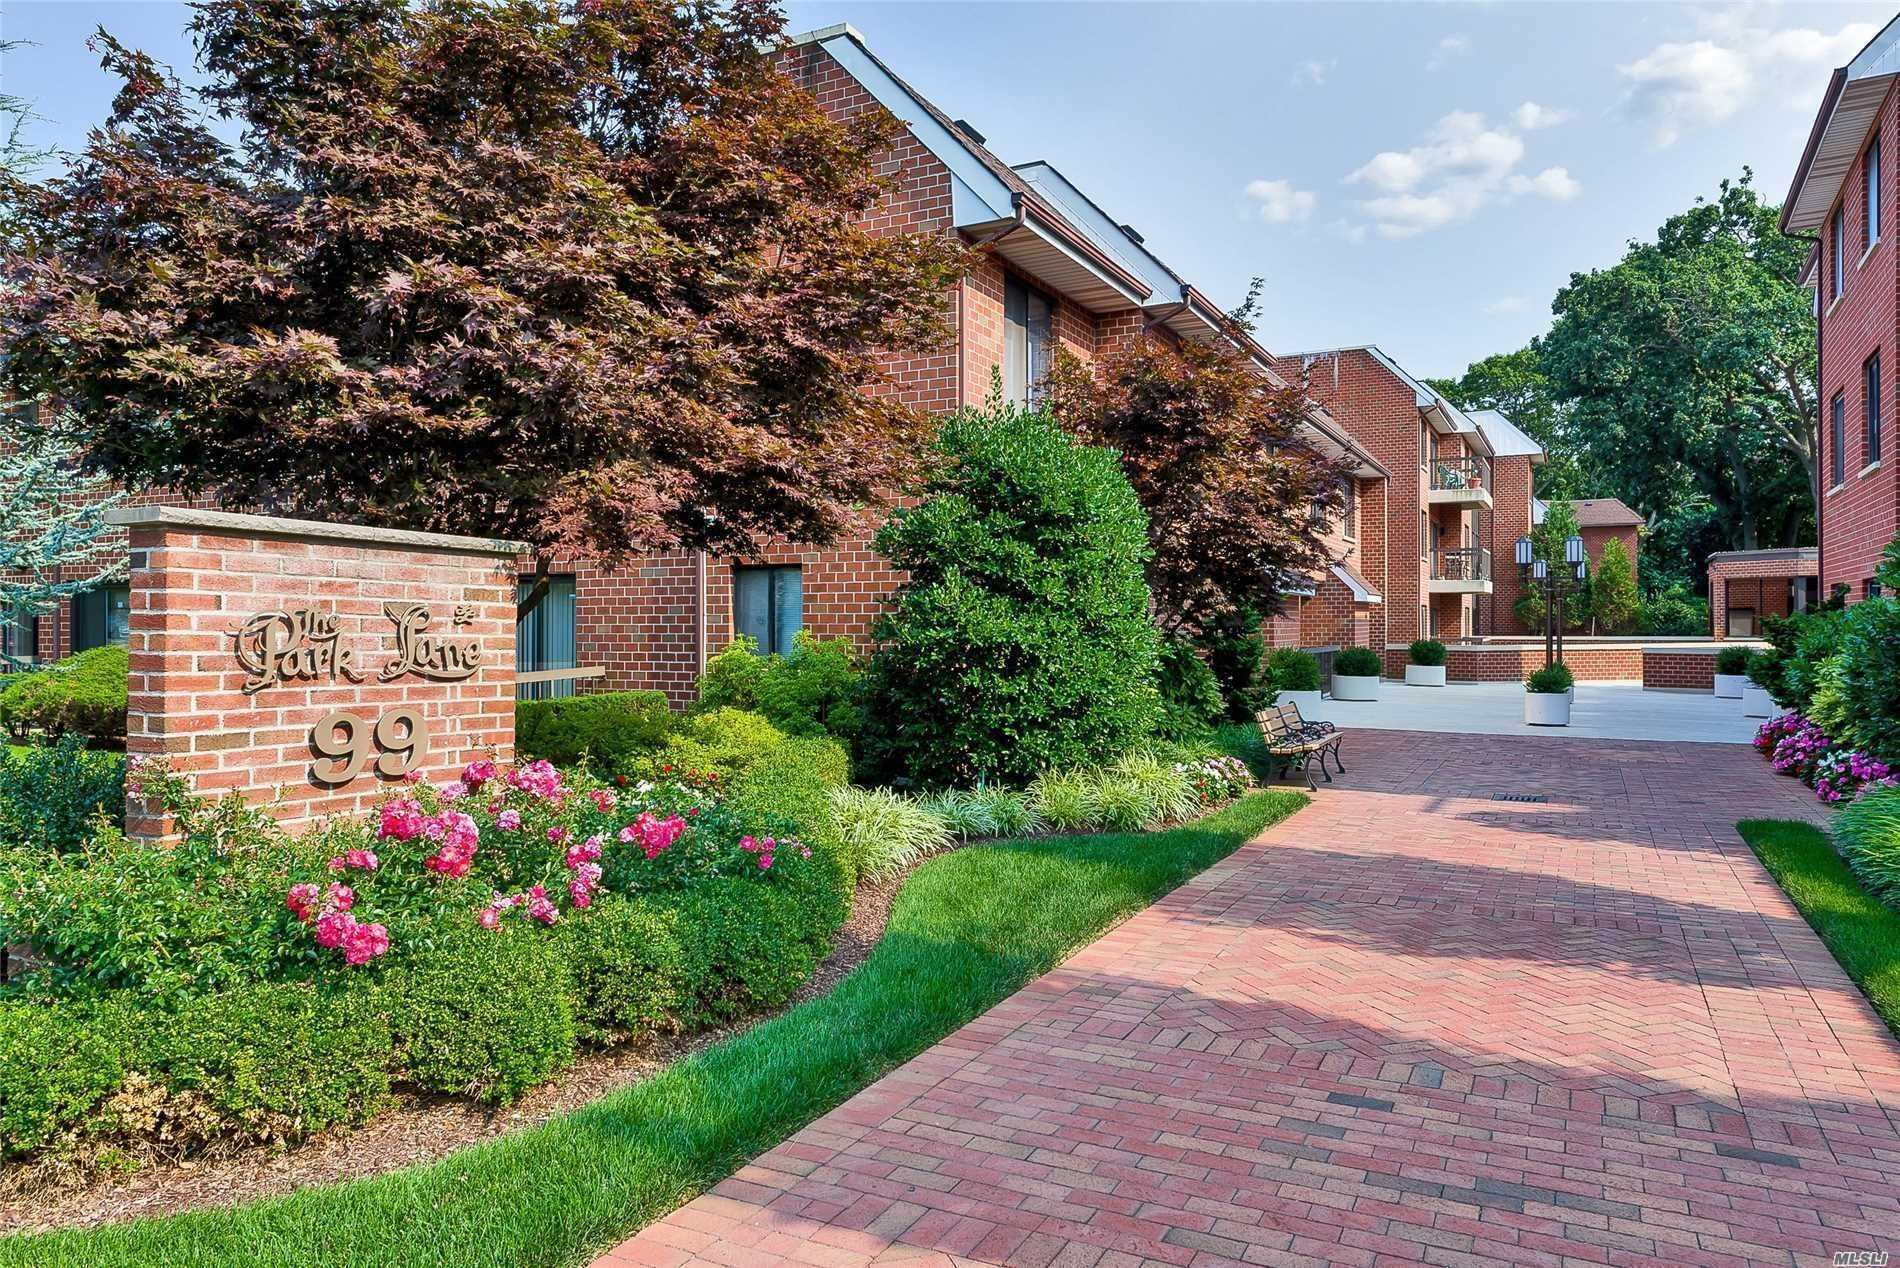 Property for sale at 99 South Park Avenue # 219, Rockville Centre NY 11570, Rockville Centre,  New York 11570